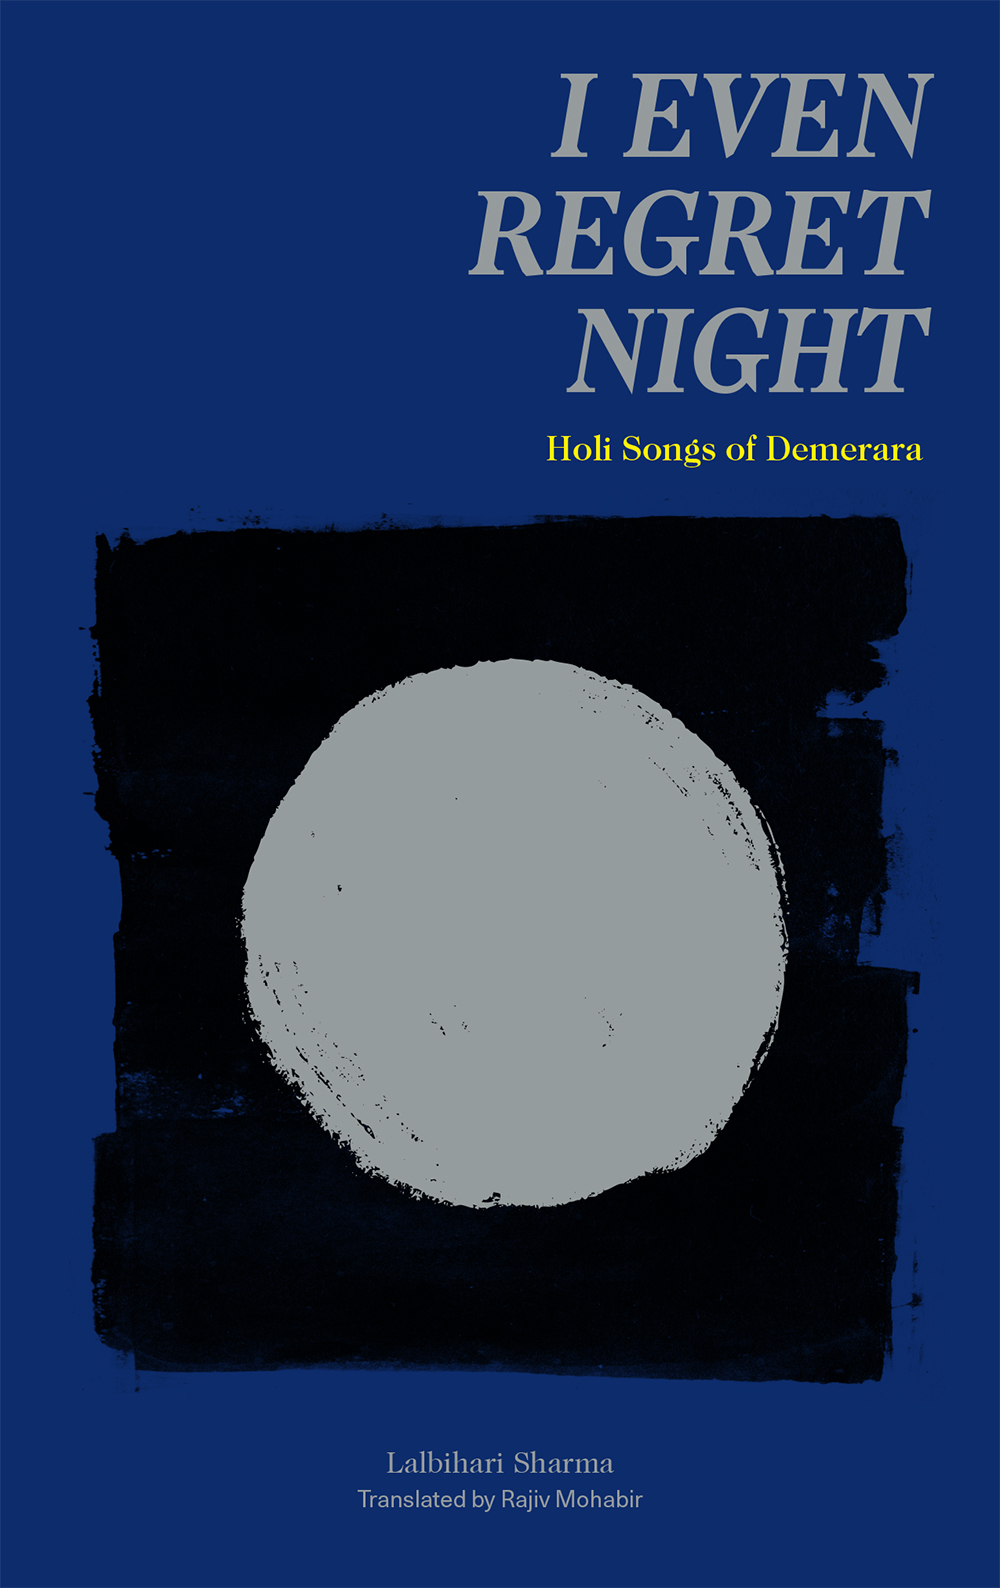 I Even Regret Night: Holi Songs of Demerara